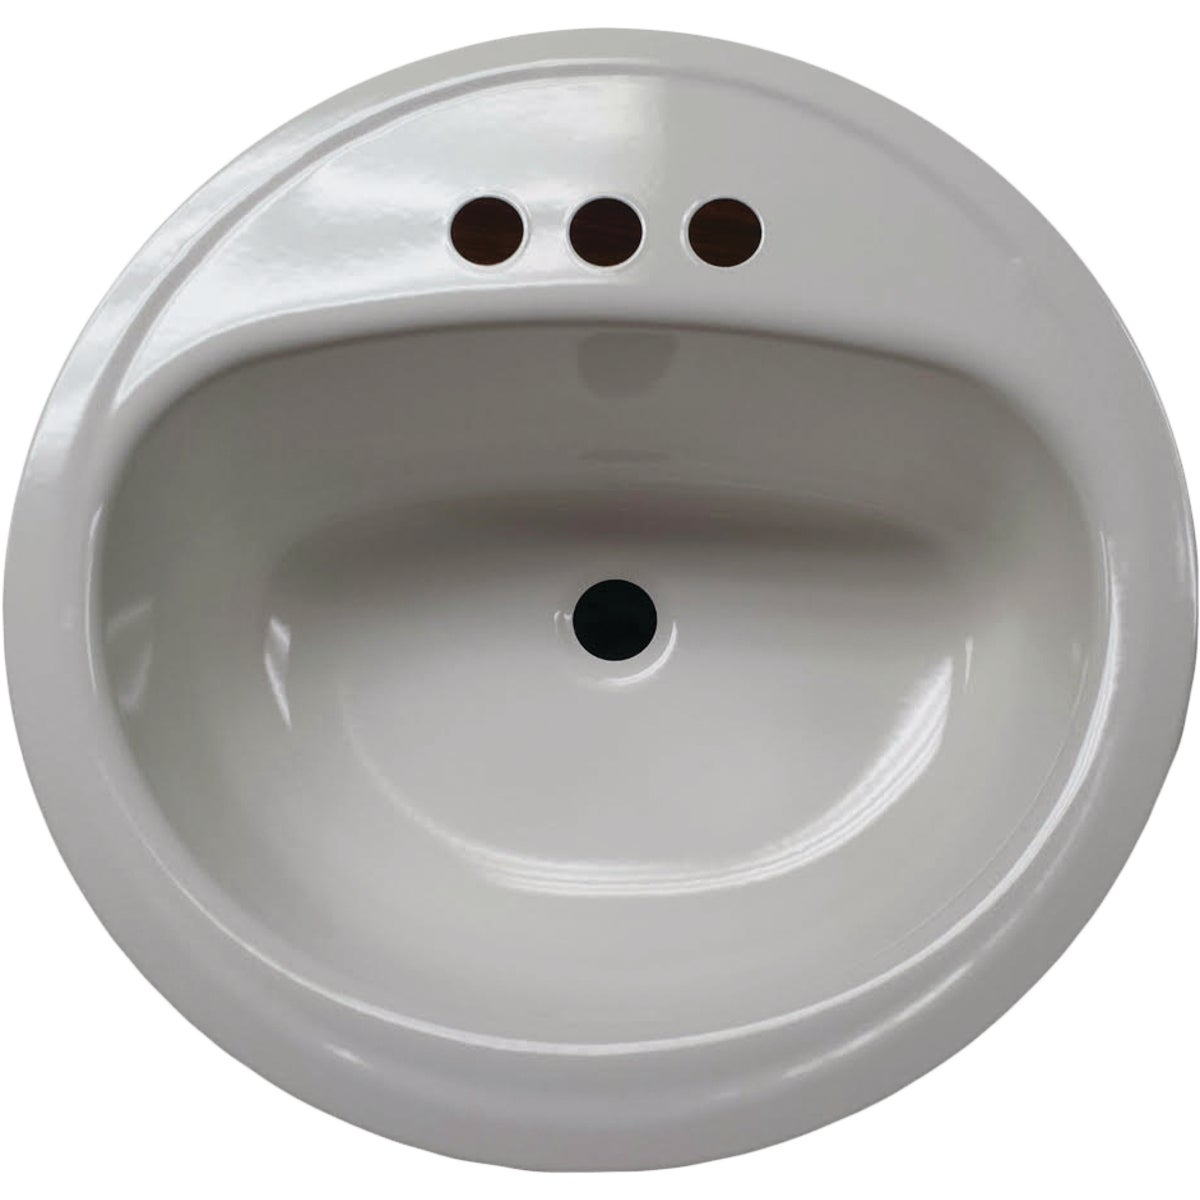 WHITE OVAL LAVATORY - 3004-130 by Briggs